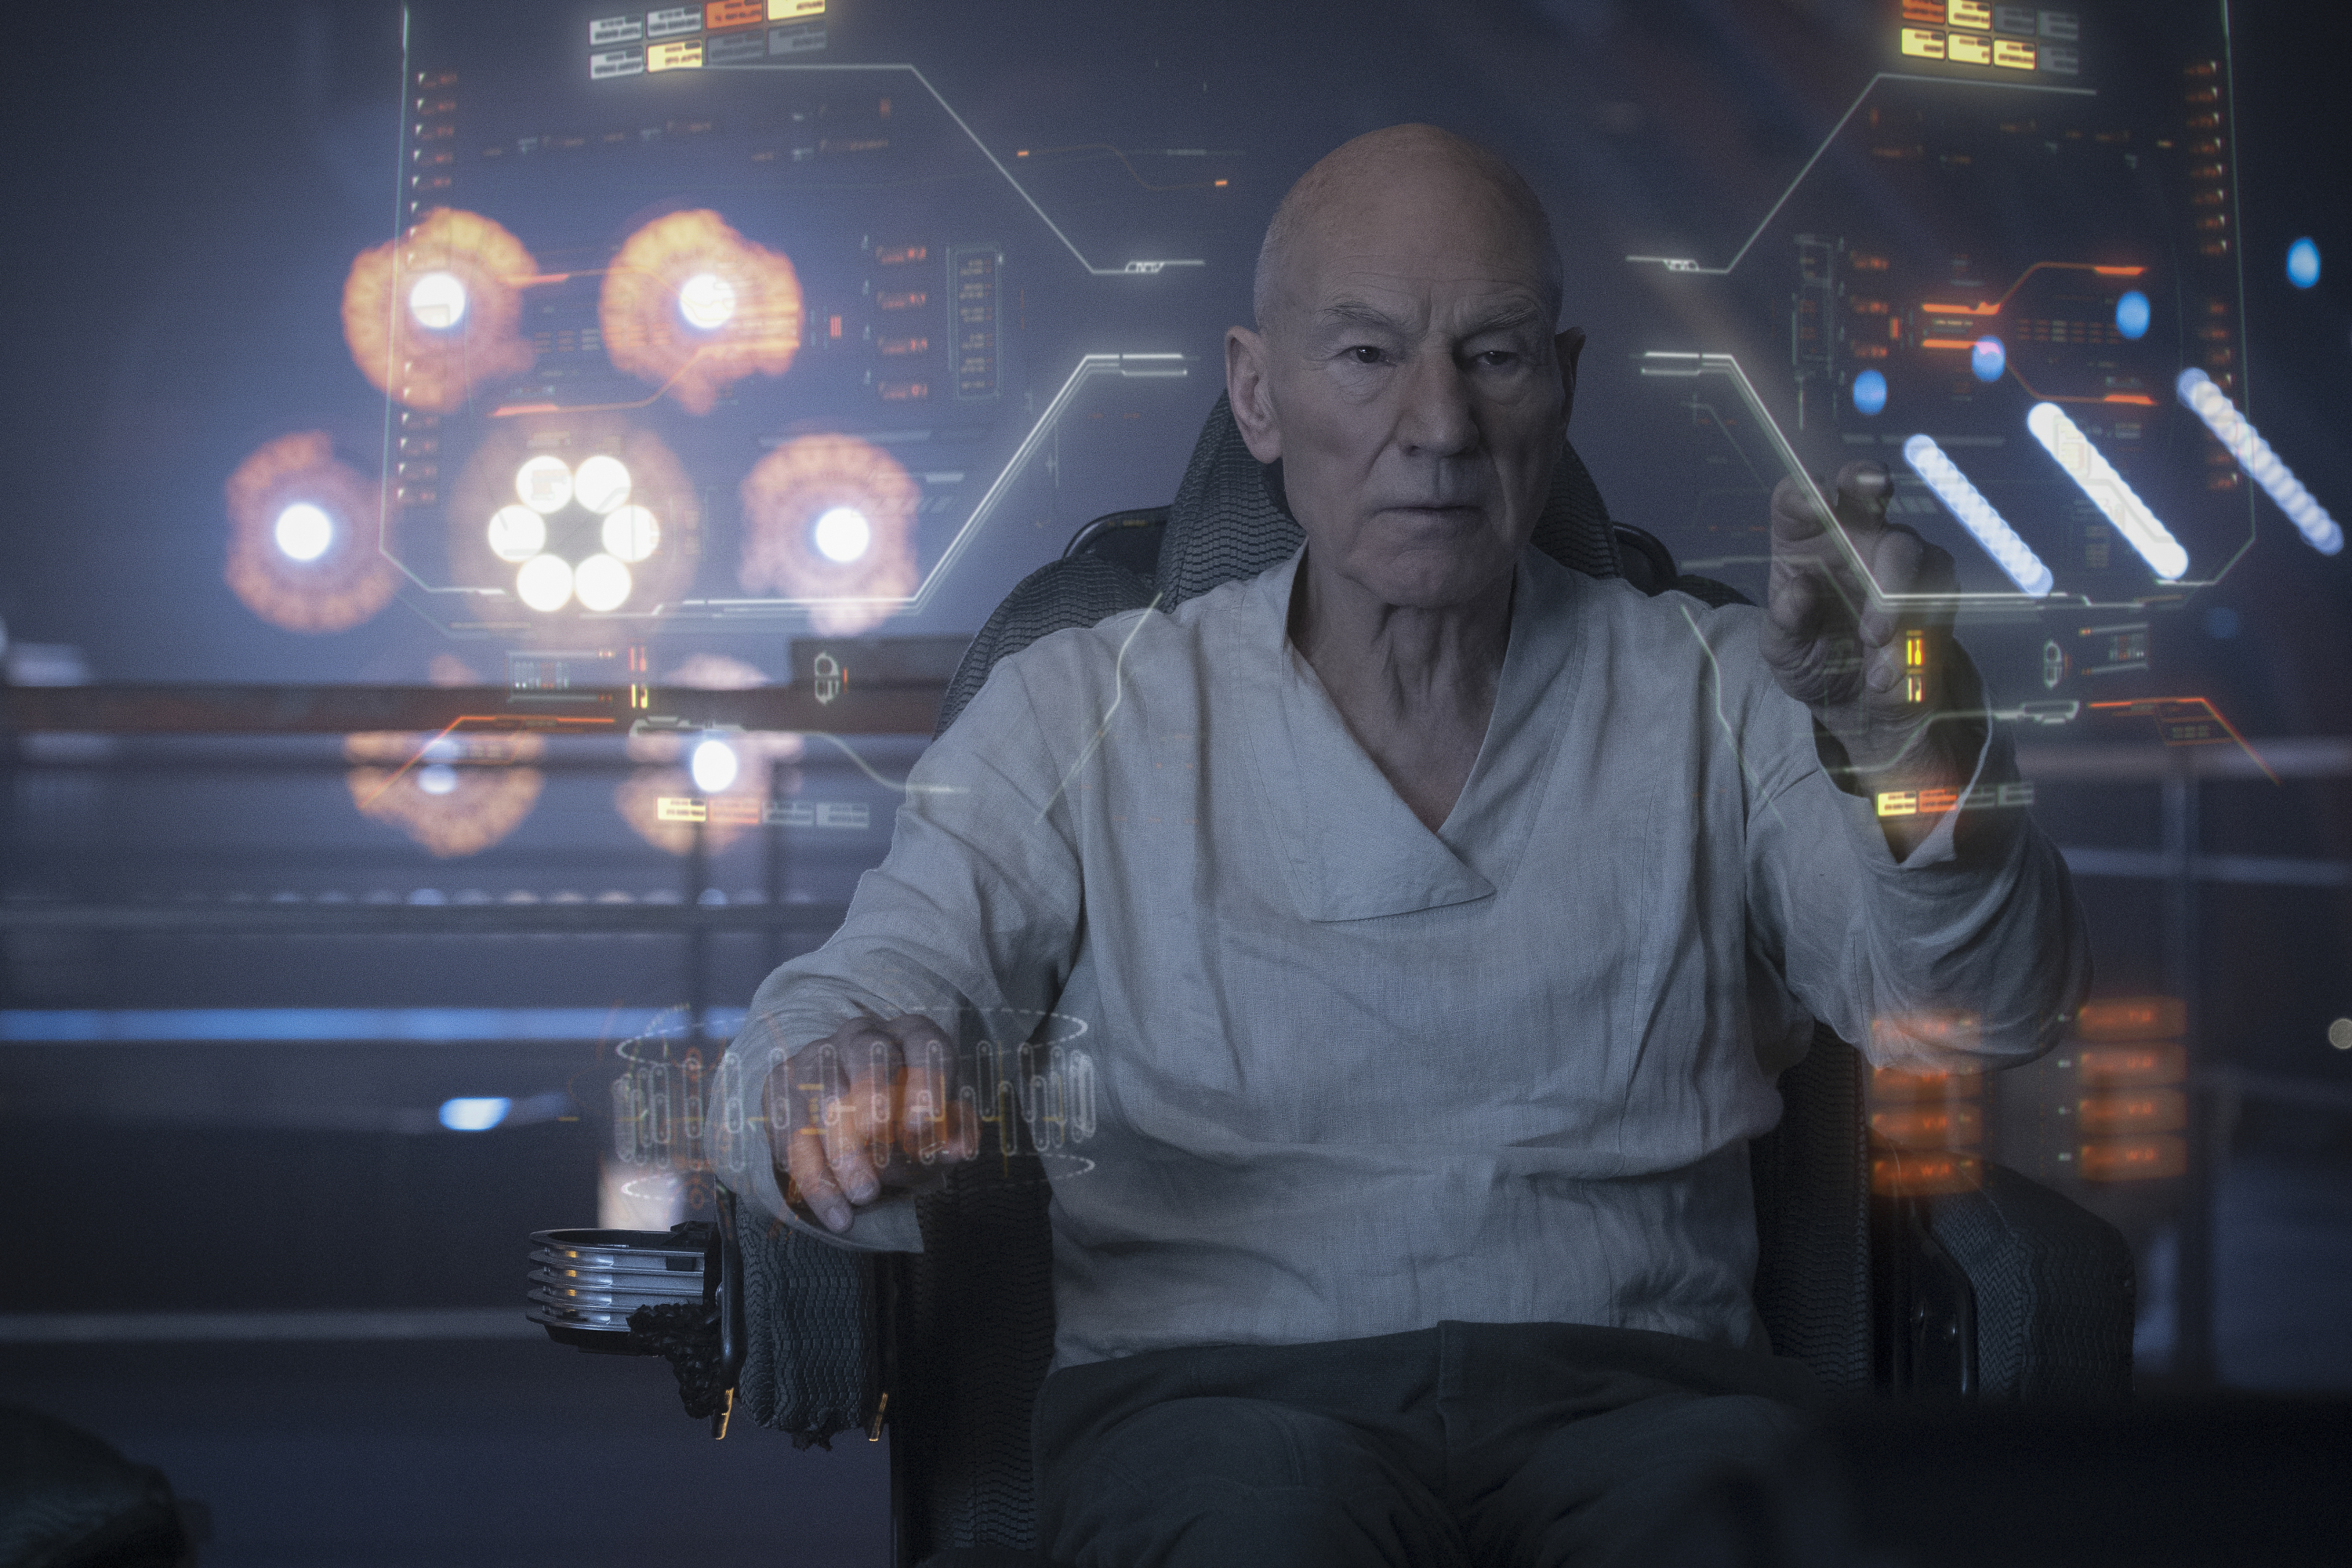 Patrick Stewart as Jean-Luc Picard pilots a ship, surrounded by virtual heads-up displays